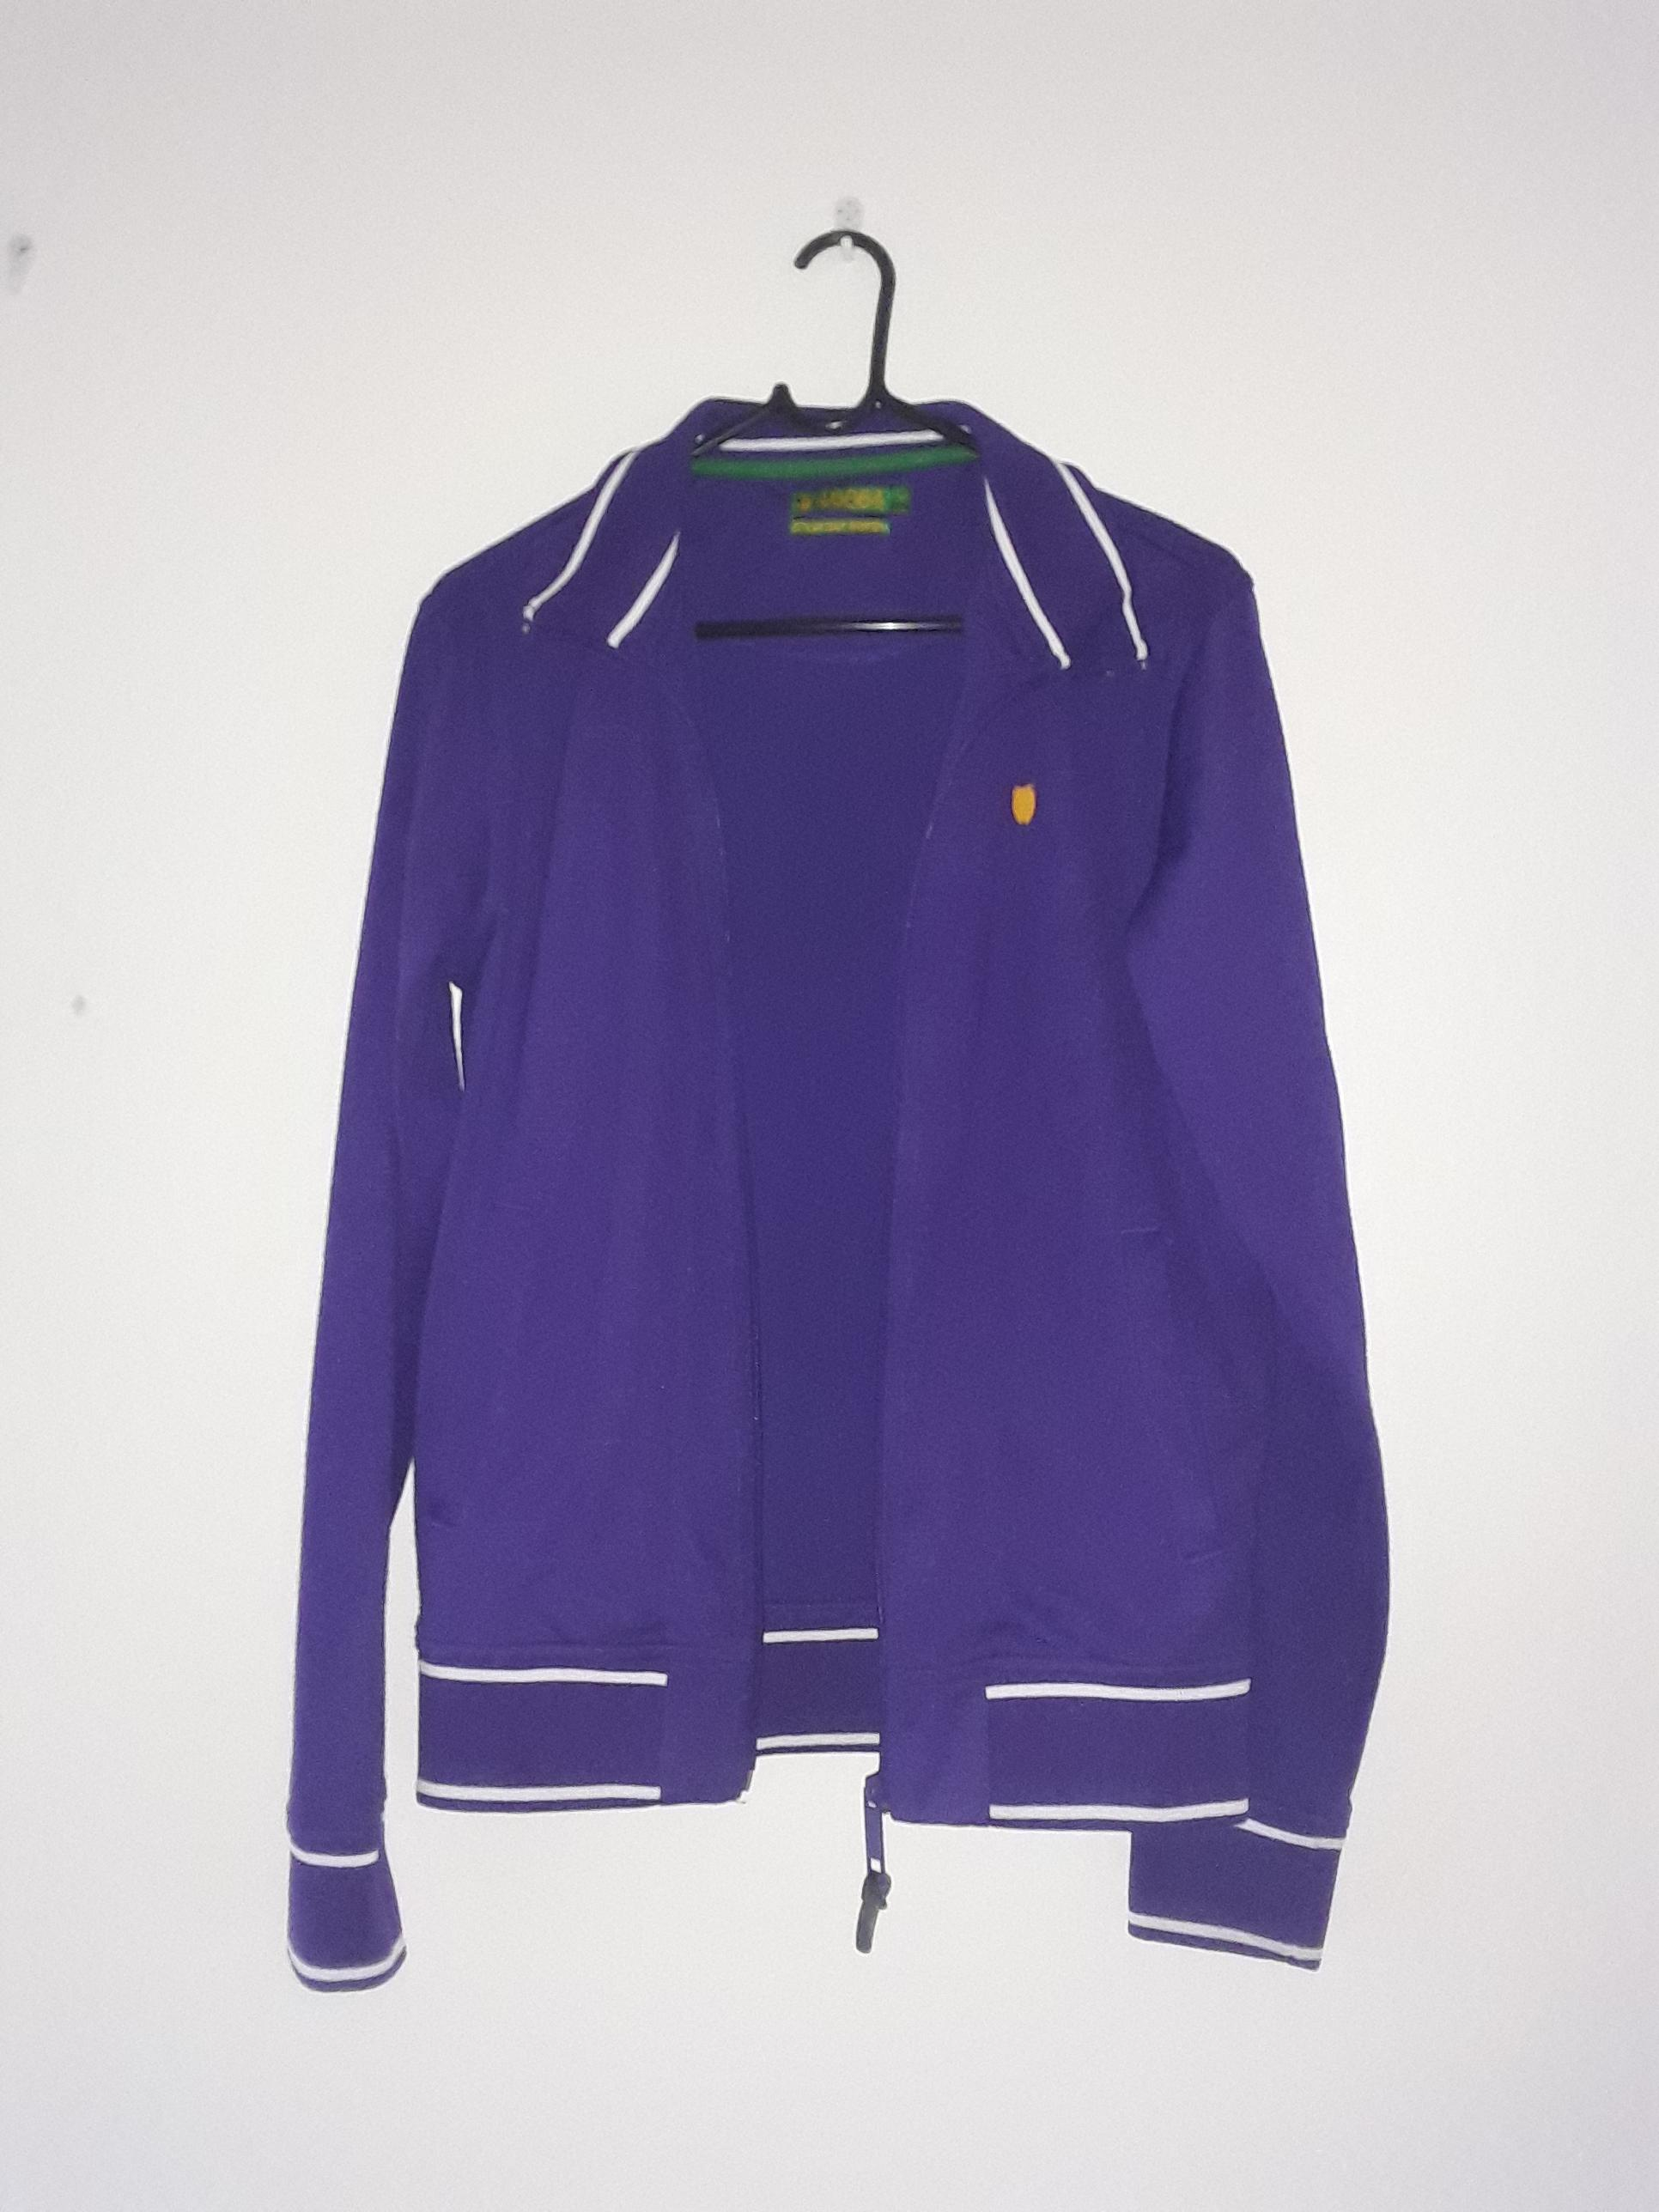 46664 Purple Jacket